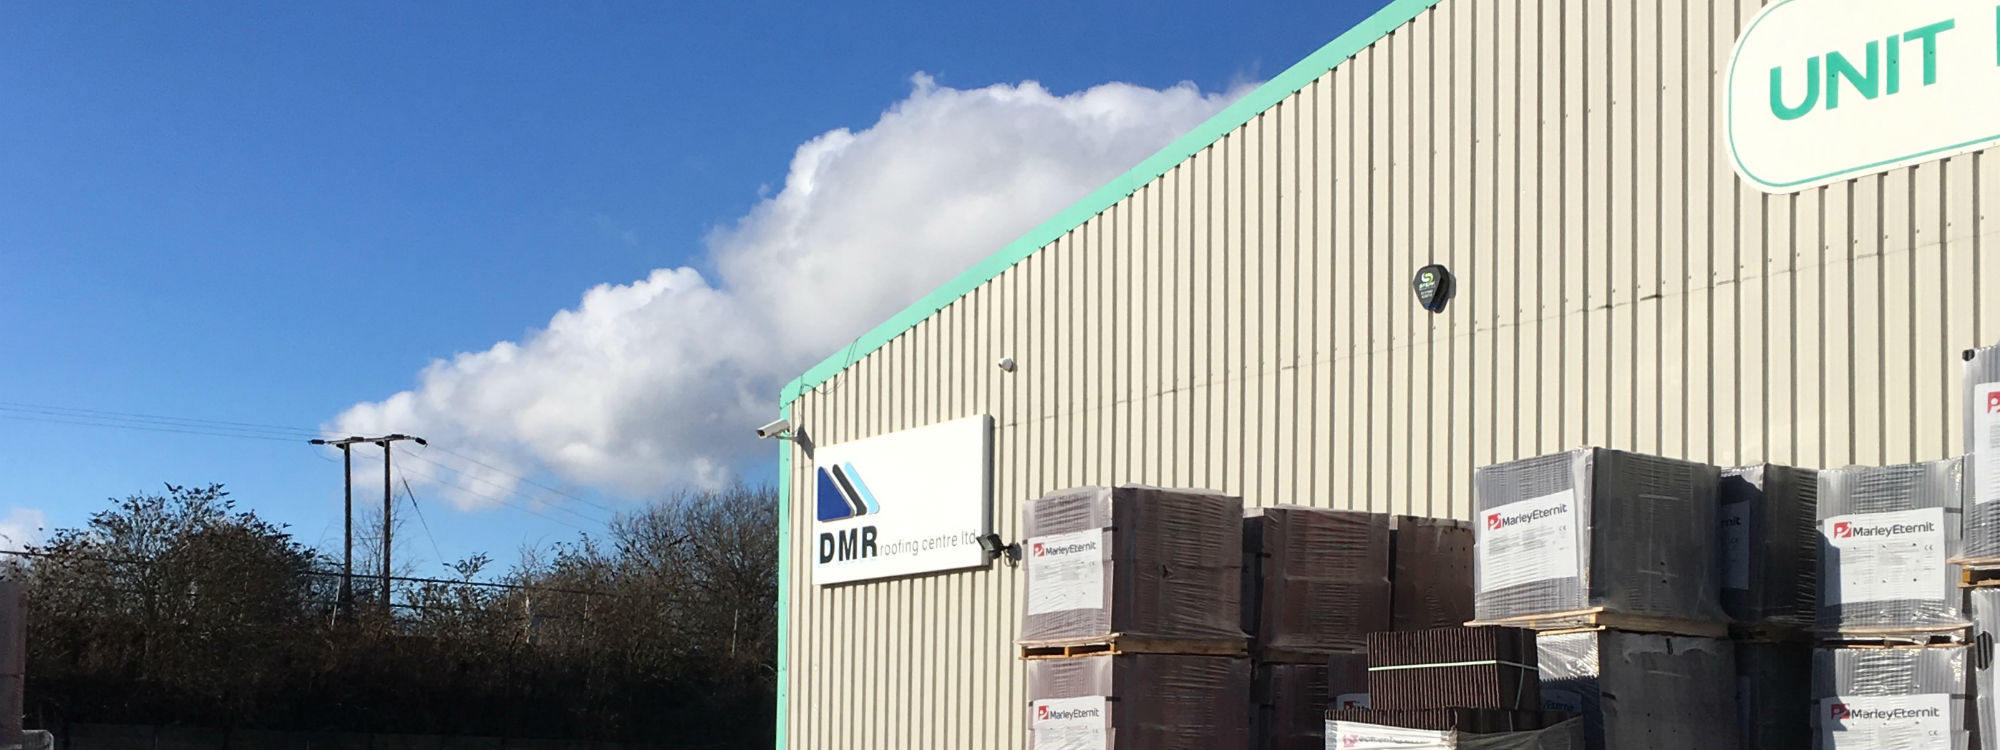 roofing materials, DMR Roofing Centre, DMR Roofing